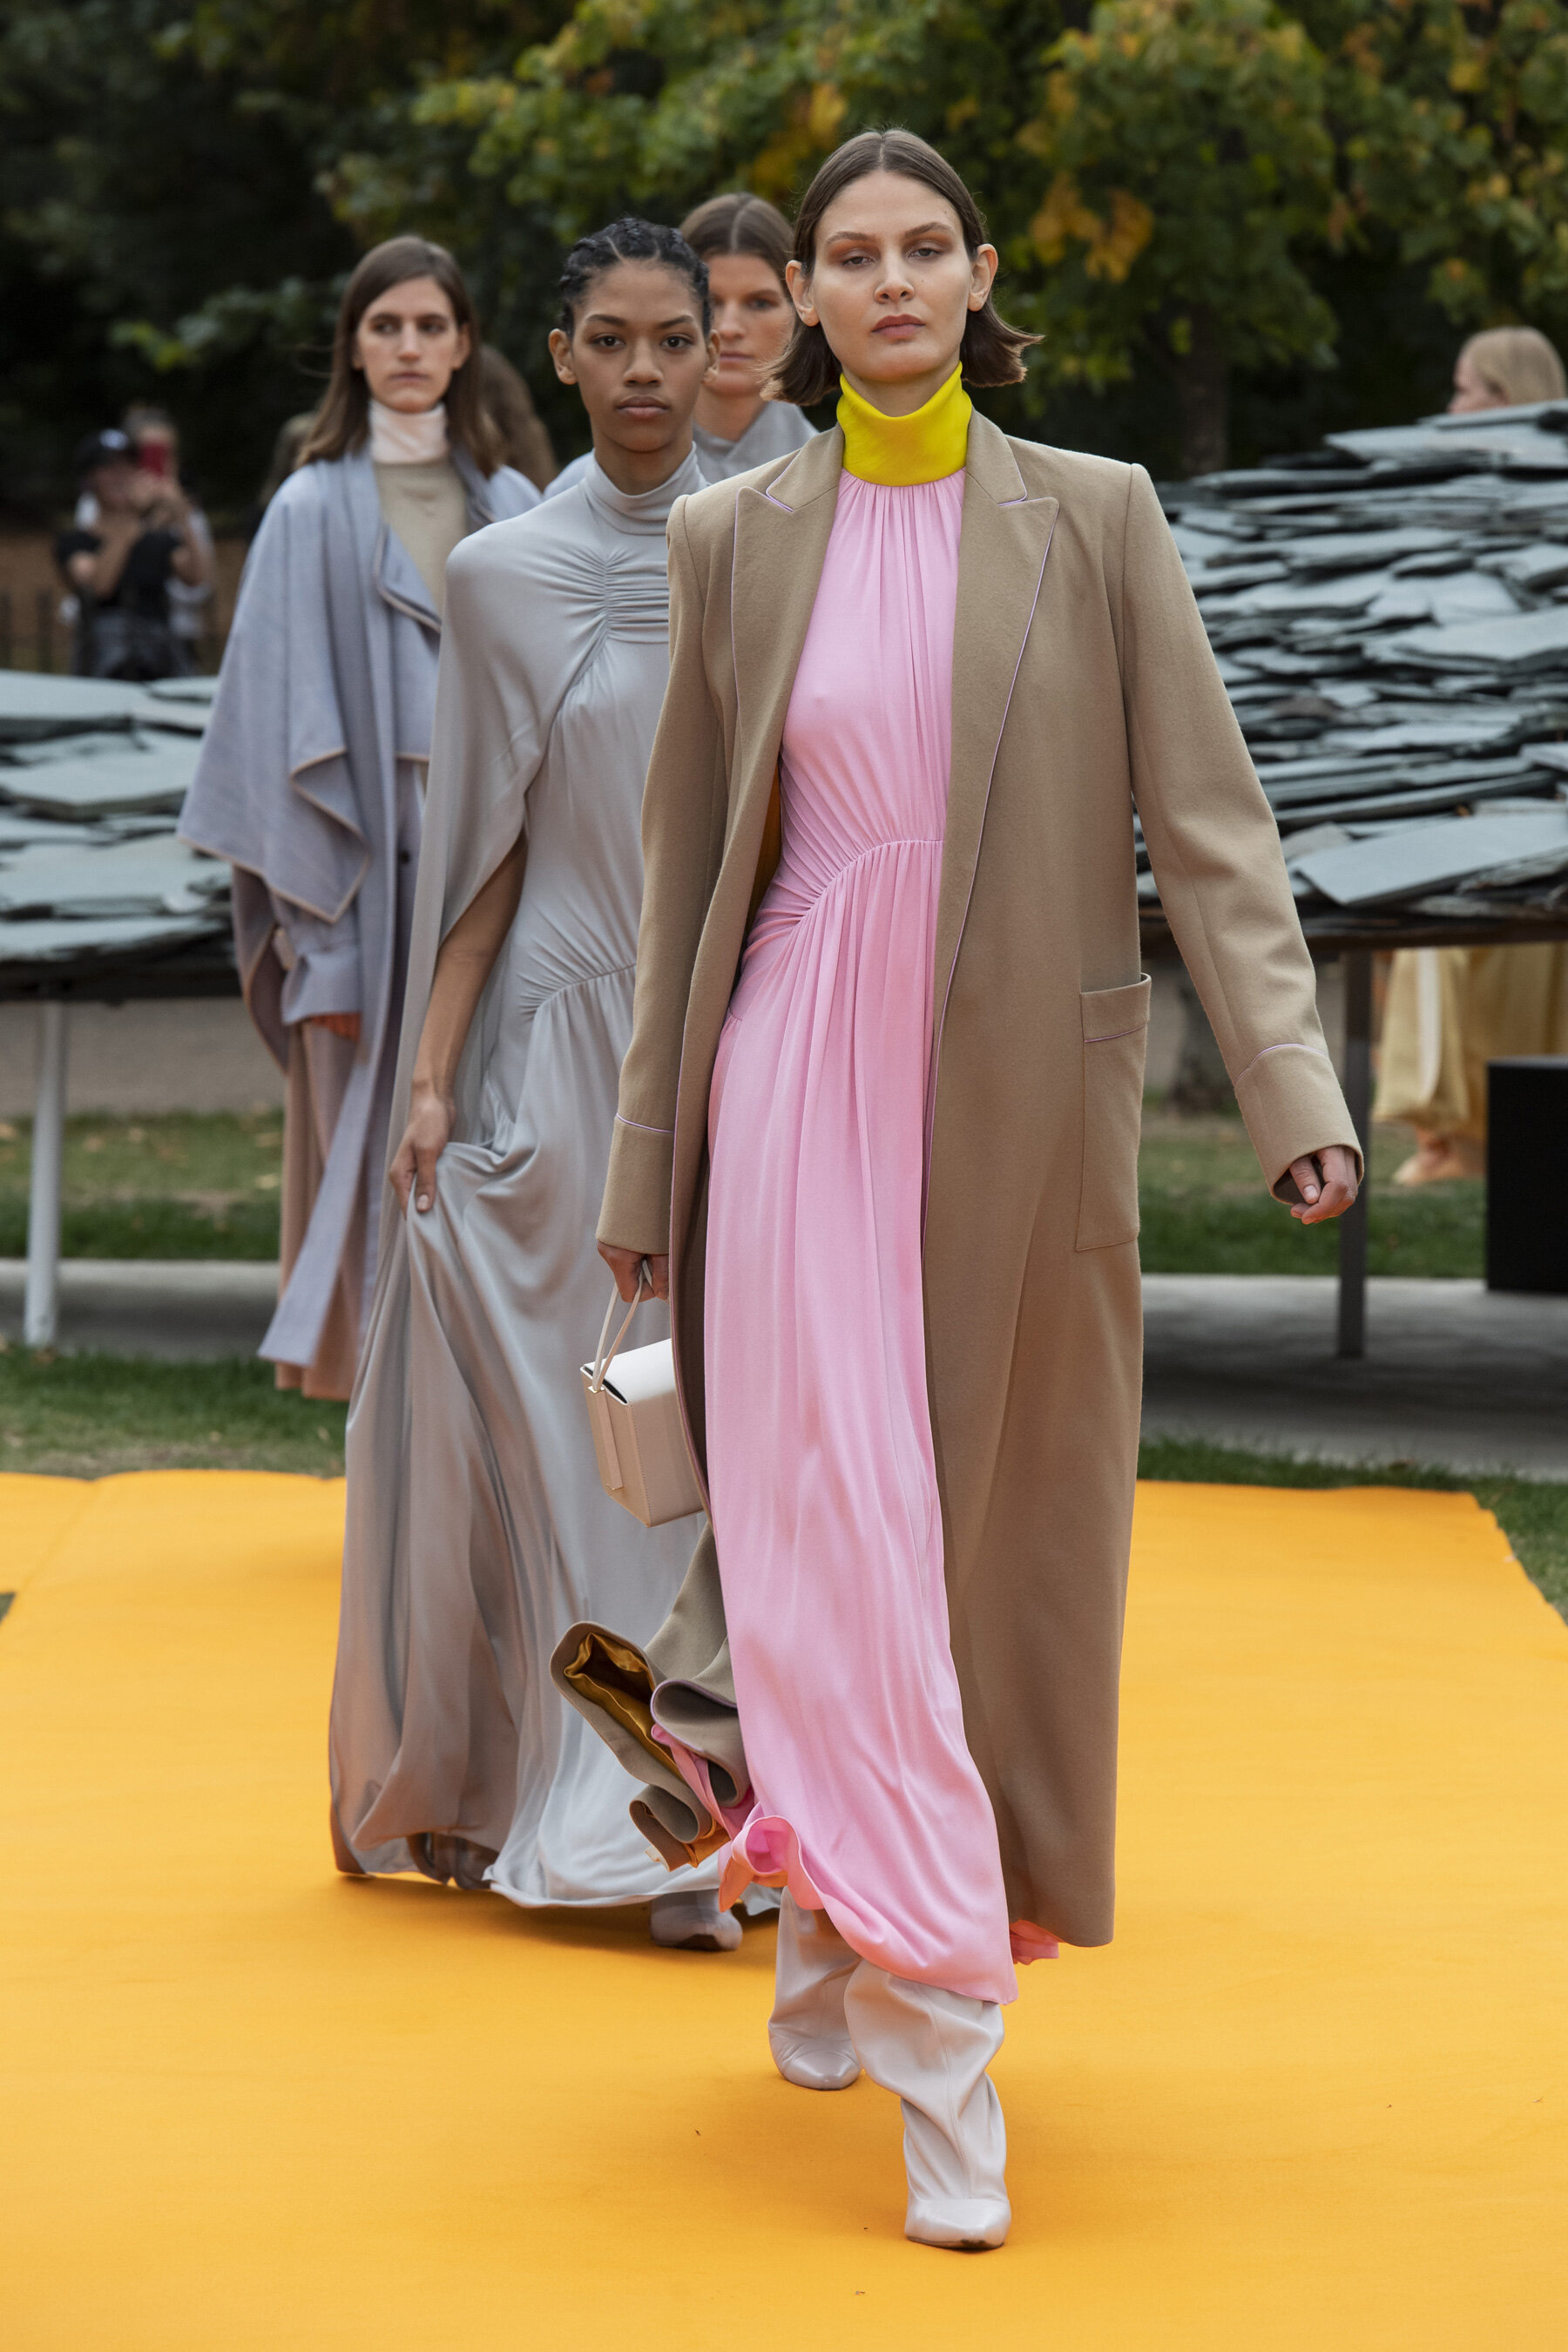 Roksanda SS20 shown at The Serpentine Gallery as part of London Fashion Week (Photo: theimpression.com)